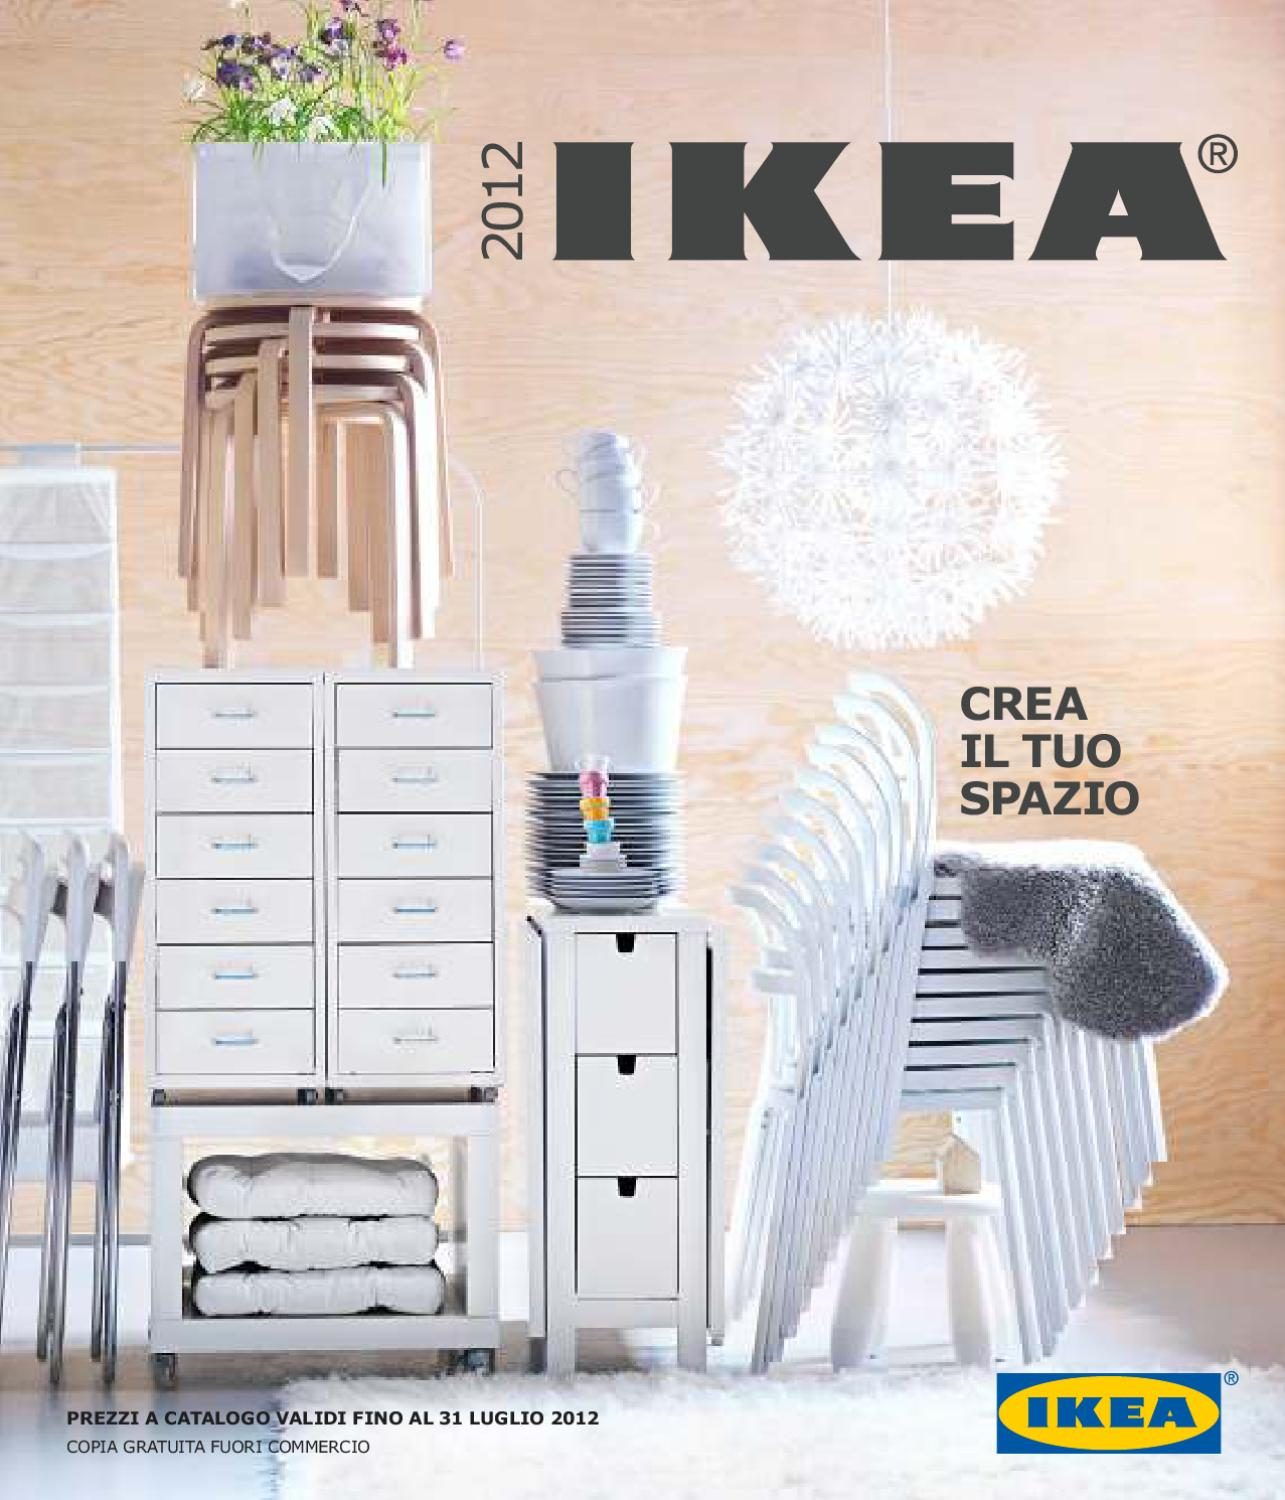 ikea armadi guardaroba componibili: armadi amazon.it. - Armadi Guardaroba Componibili Roma